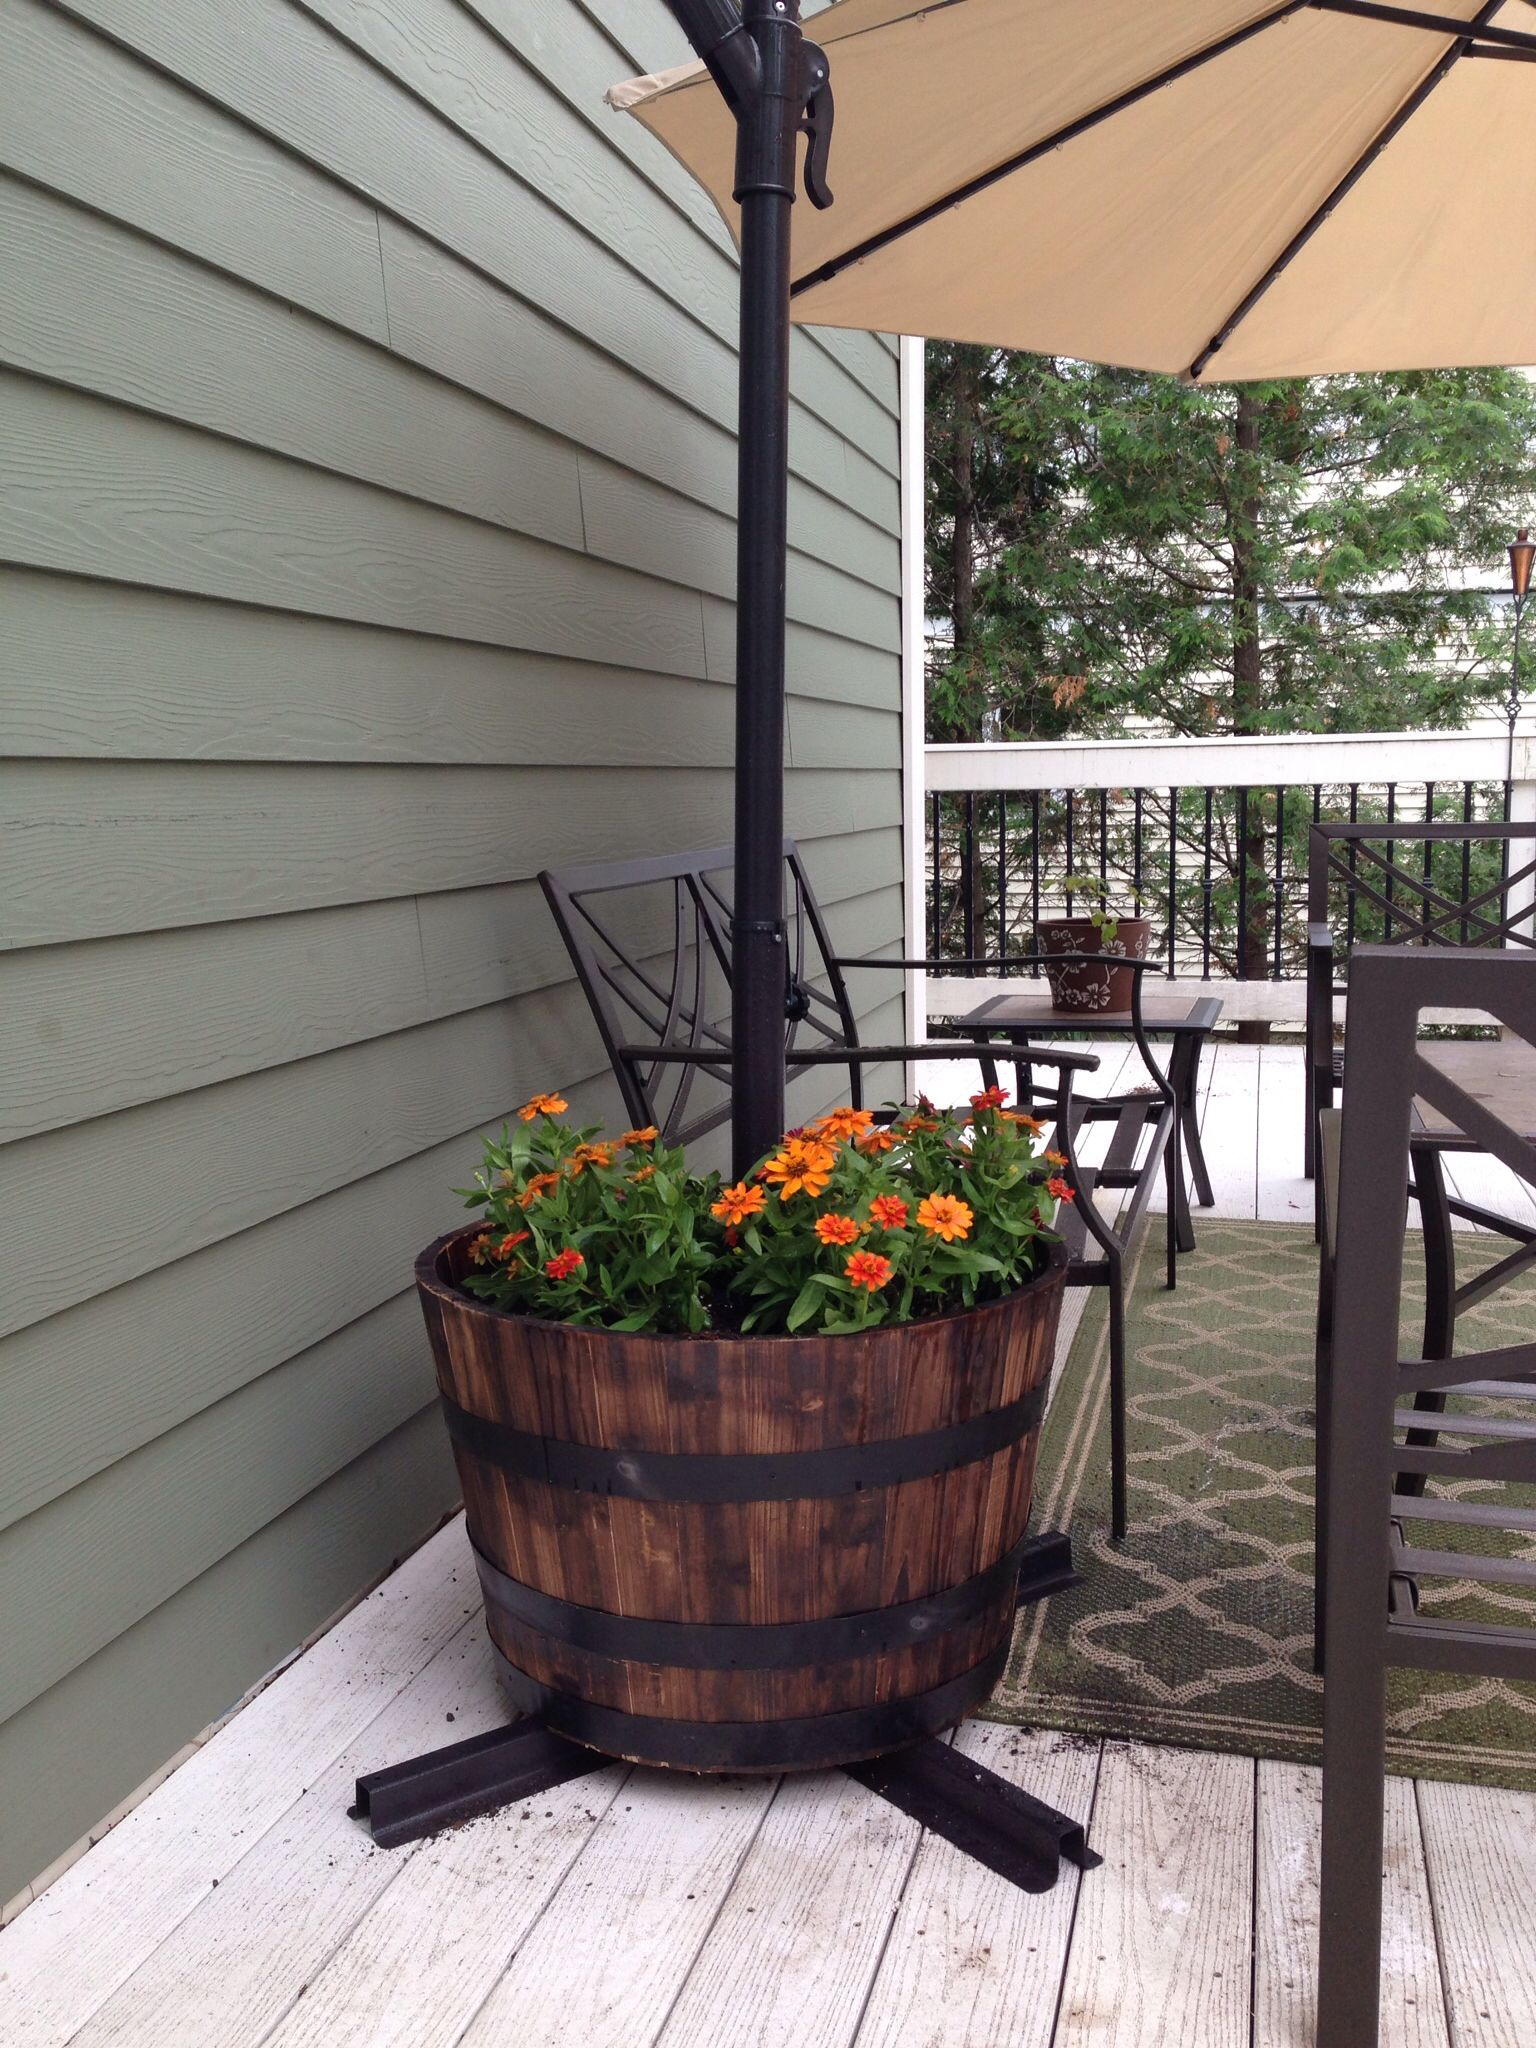 creative way to hold down a patio umbrella! | our 1st home